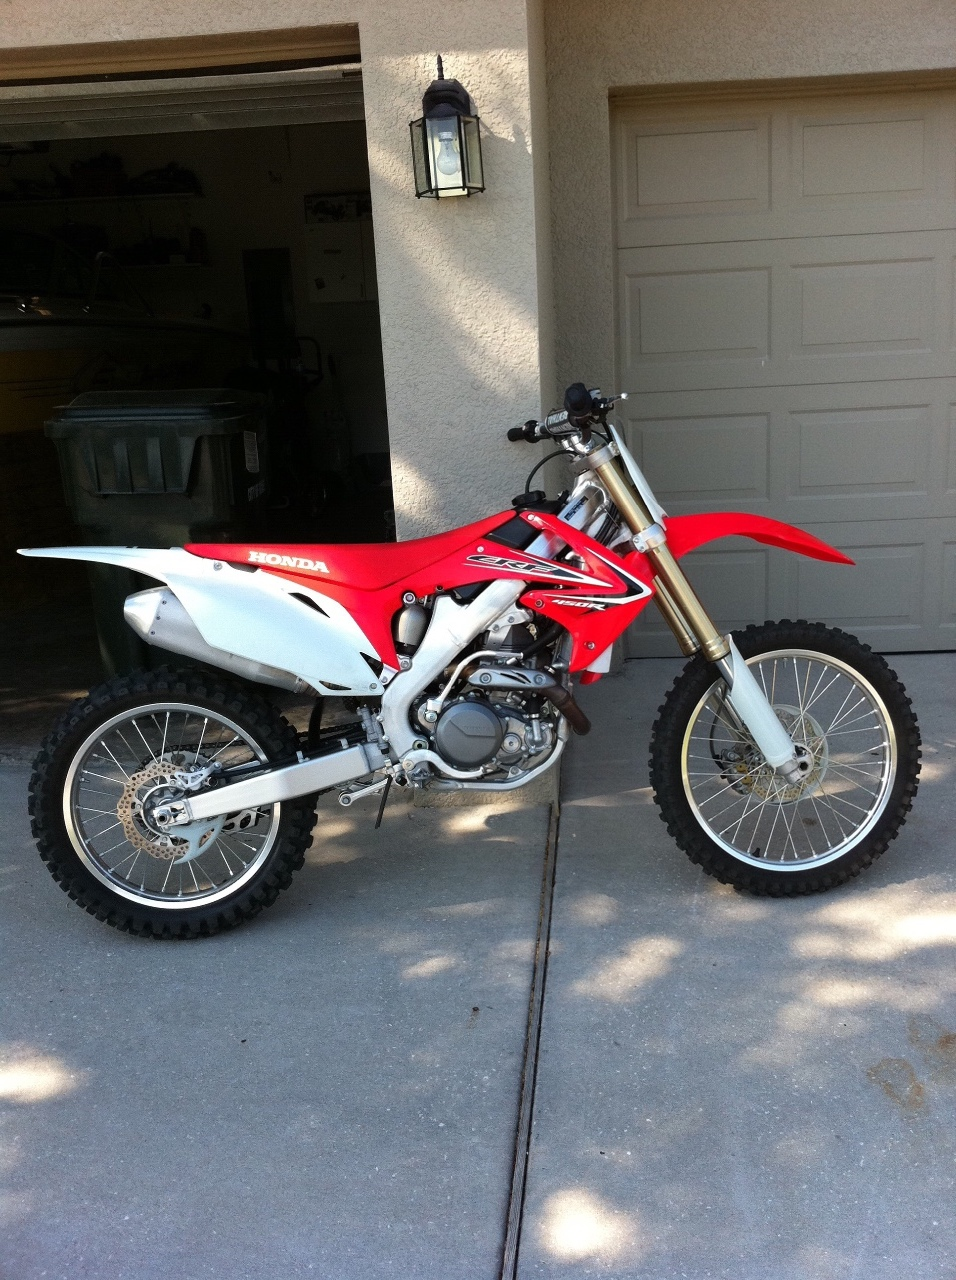 Florida 2285 Near Me Cycle Trader 1999 Olds 88 Fuel Filter Location